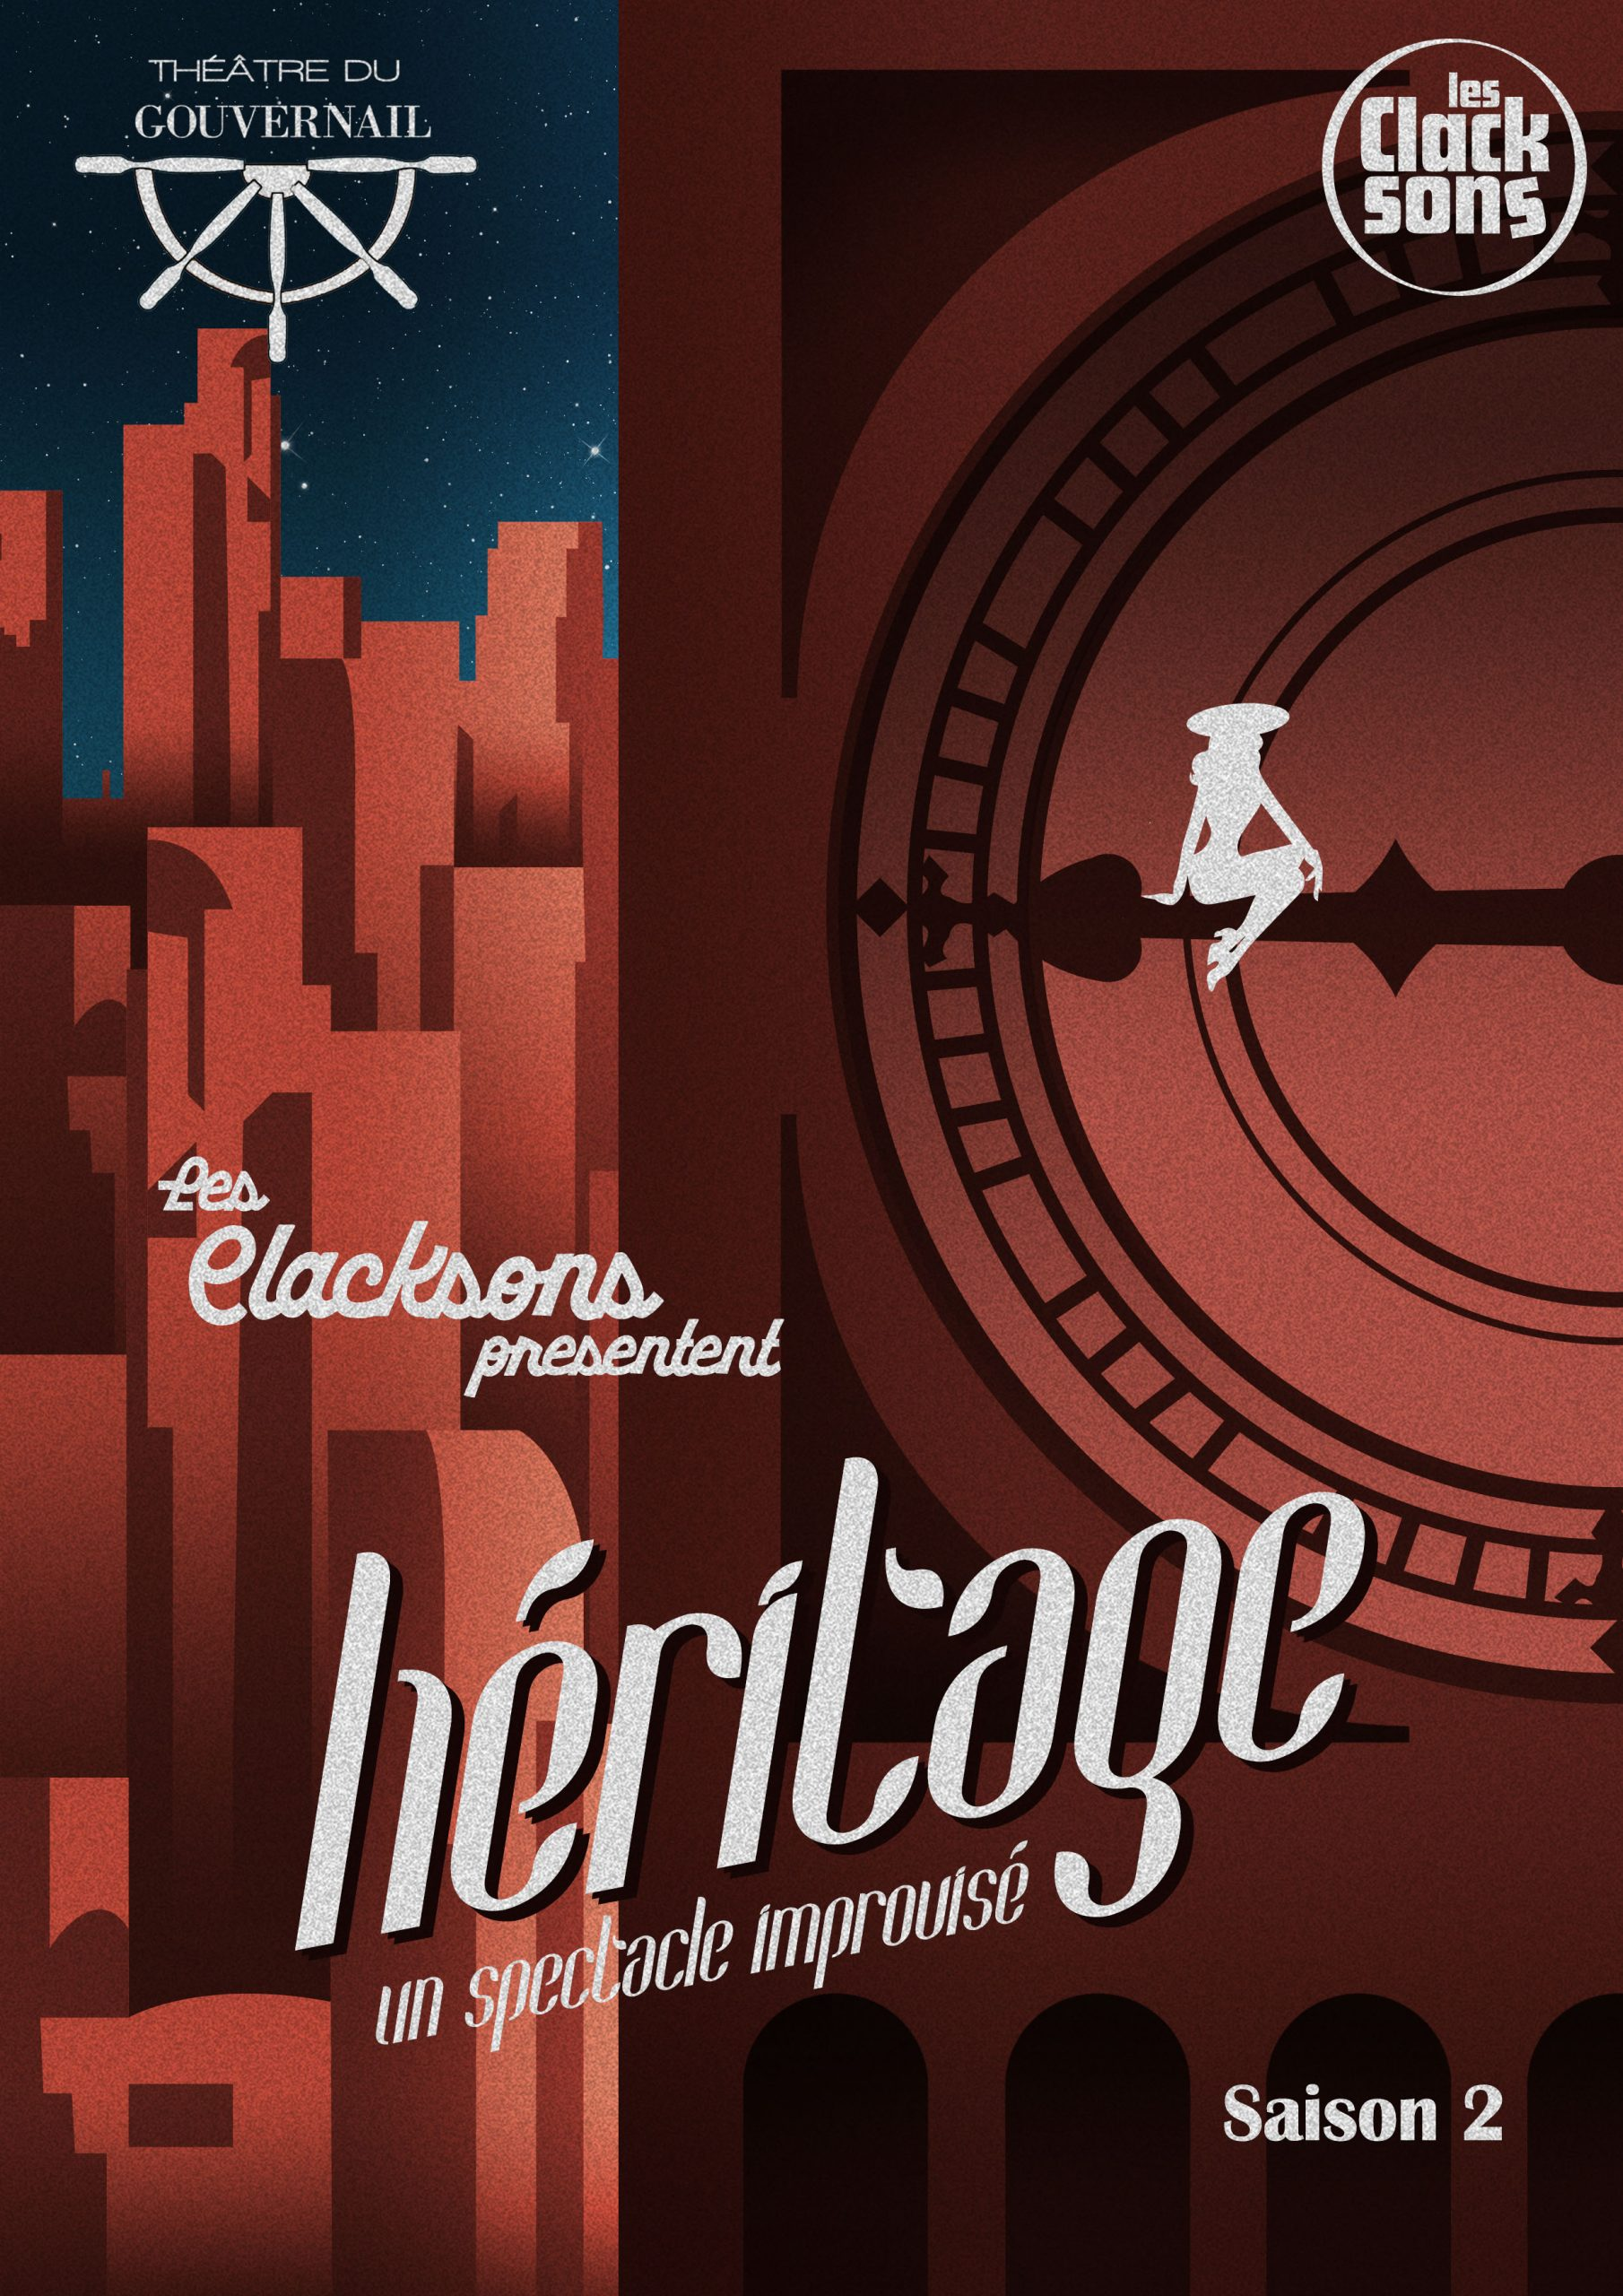 AFFICHE_SPECTACLE_HERITAGE